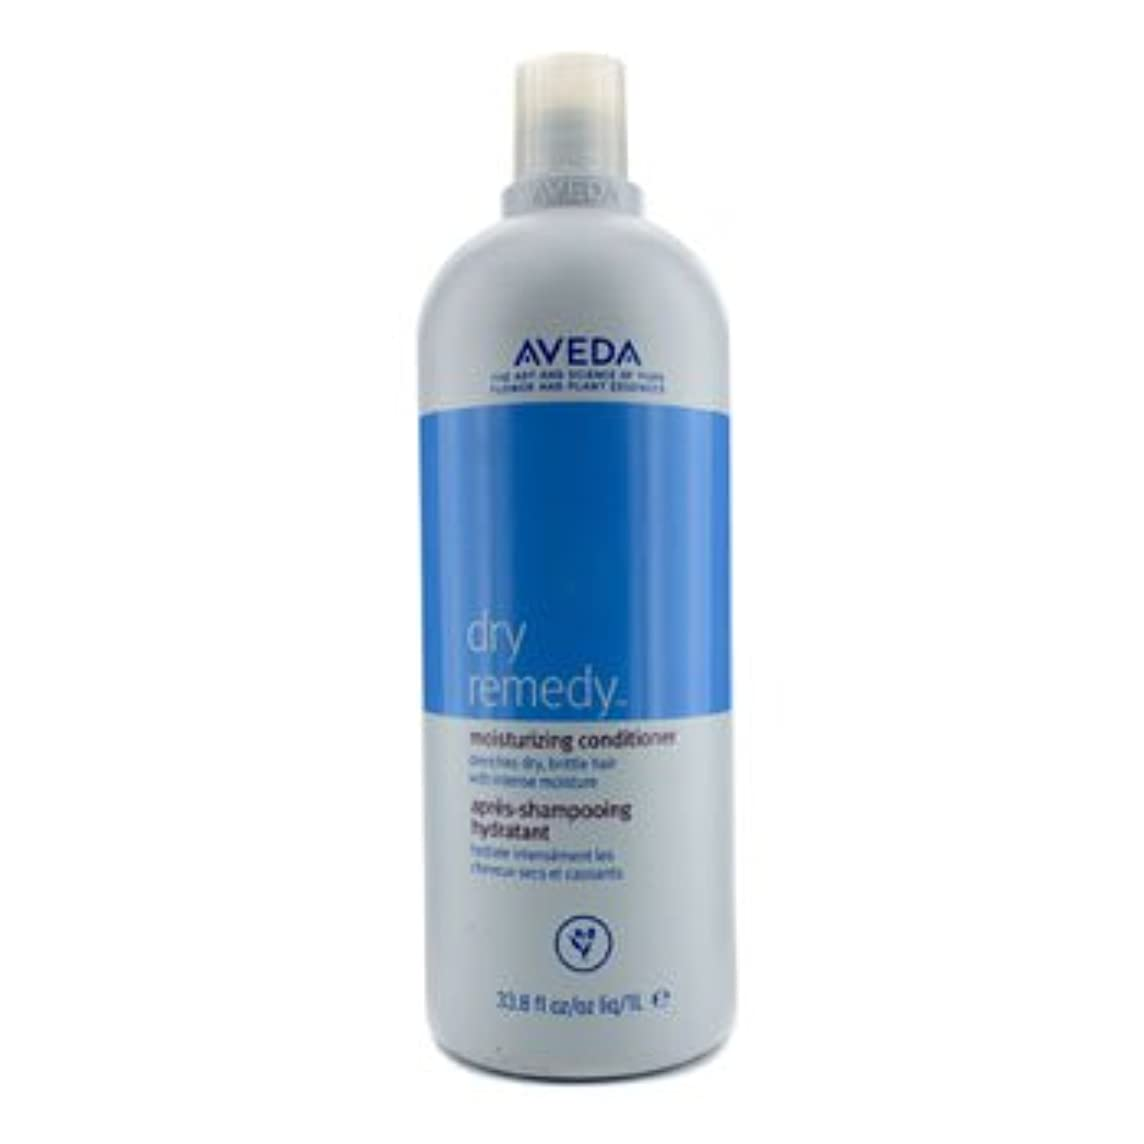 無効にする疎外する満足できる[Aveda] Dry Remedy Moisturizing Conditioner - For Drenches Dry Brittle Hair (New Packaging) 1000ml/33.8oz